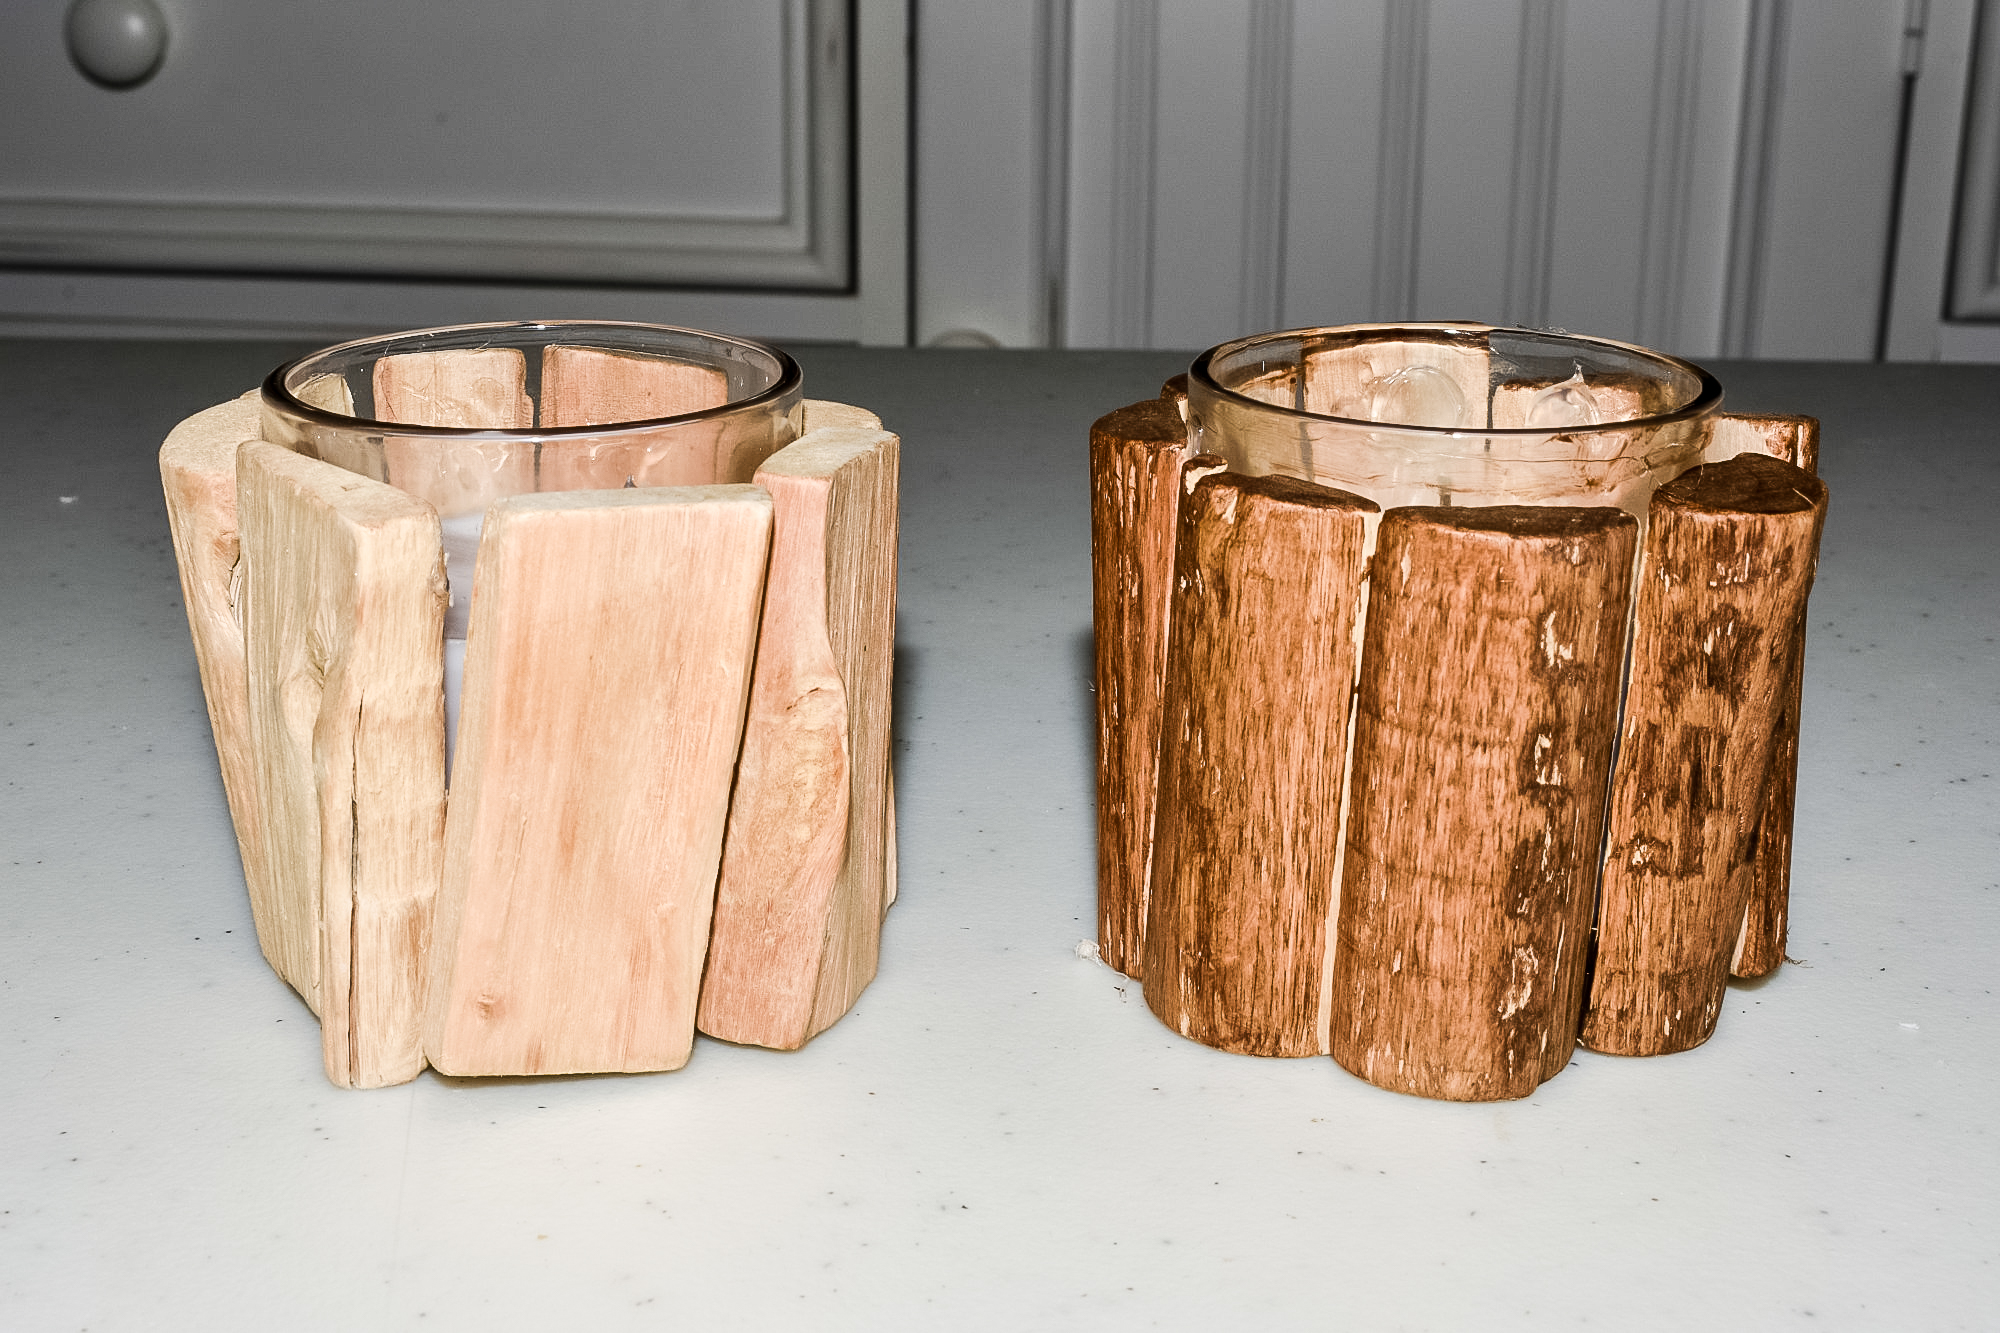 diy woodland candles with and without stain